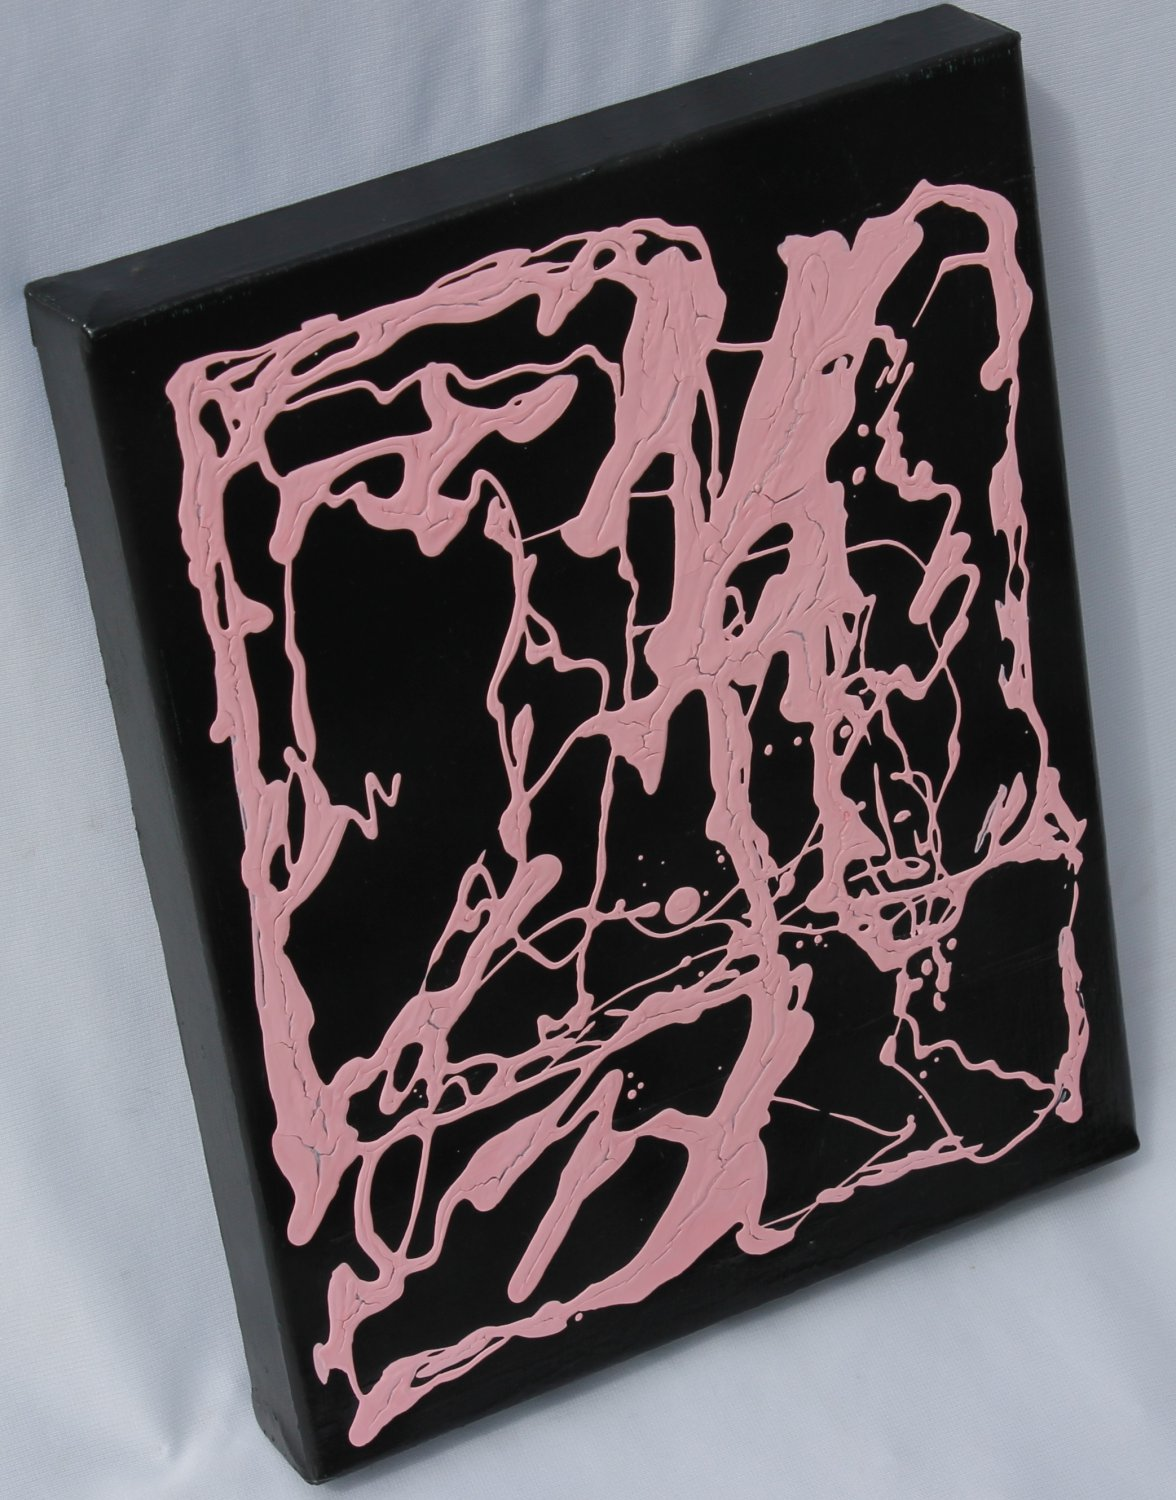 Modern Art Painting - new pink & black home decor decorating accent abstract art painting